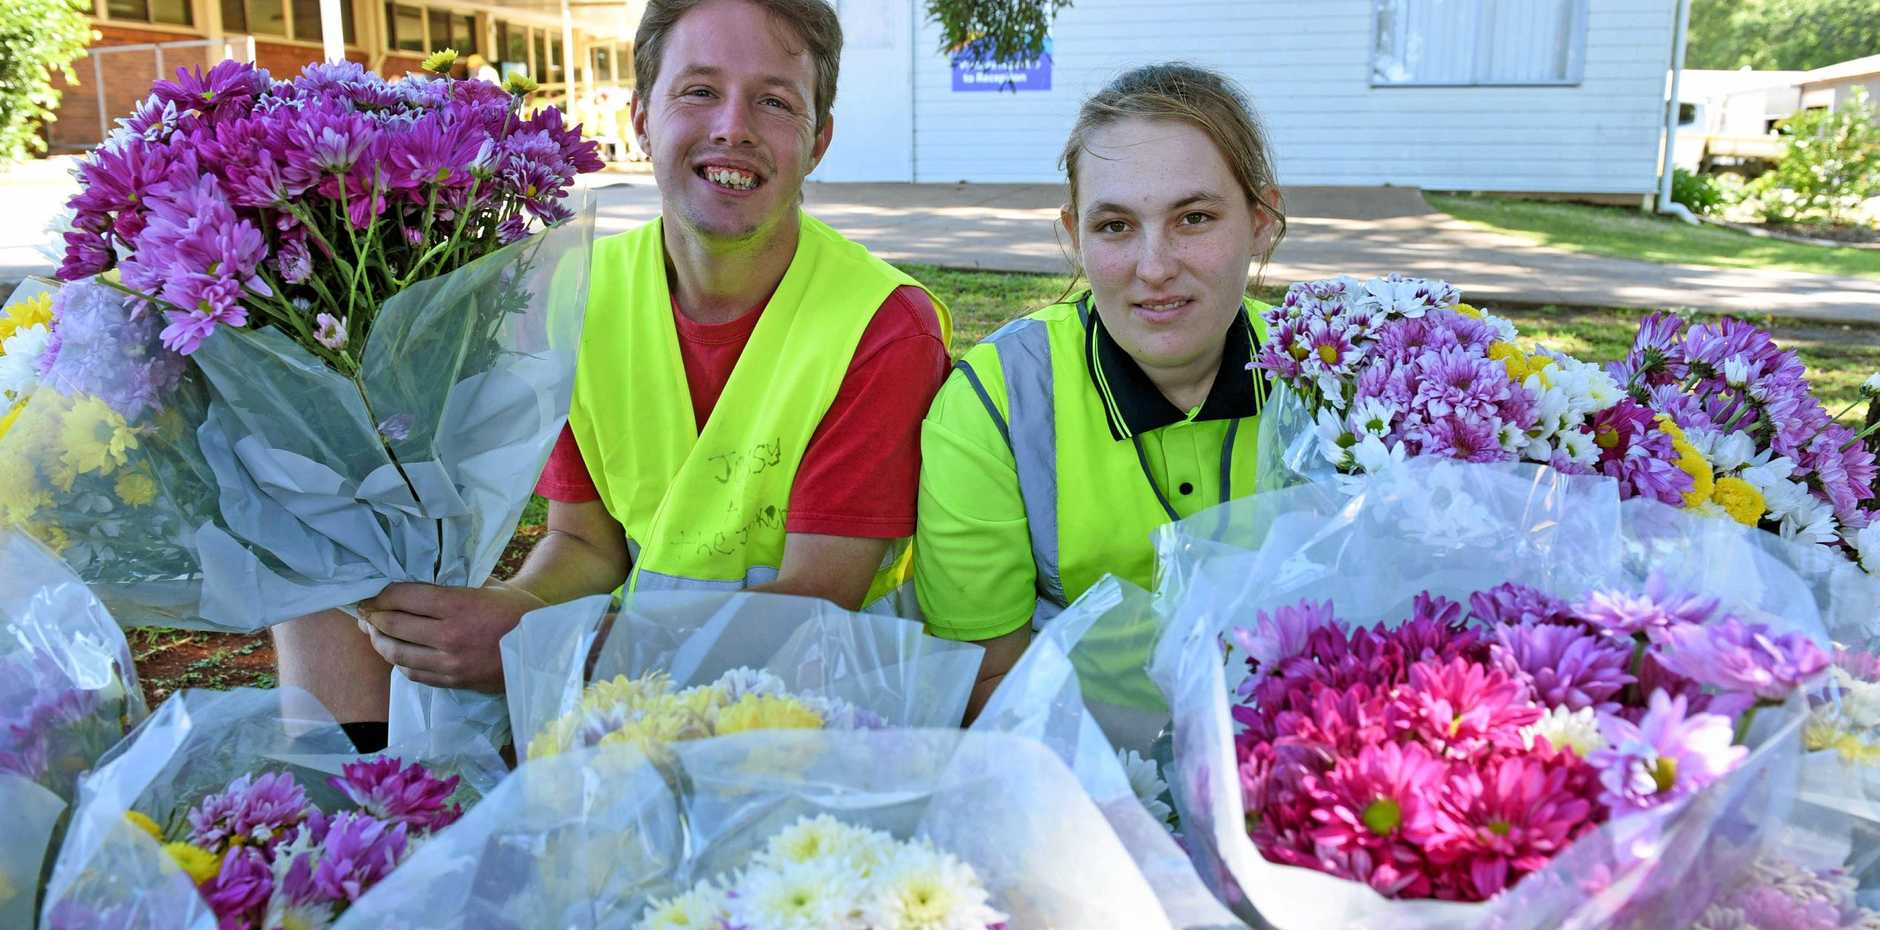 SMELL THE FLOWERS: Jessy Anderson and Jamie Lee help sell Mother's Day flowers outside the Endeavour Foundation.